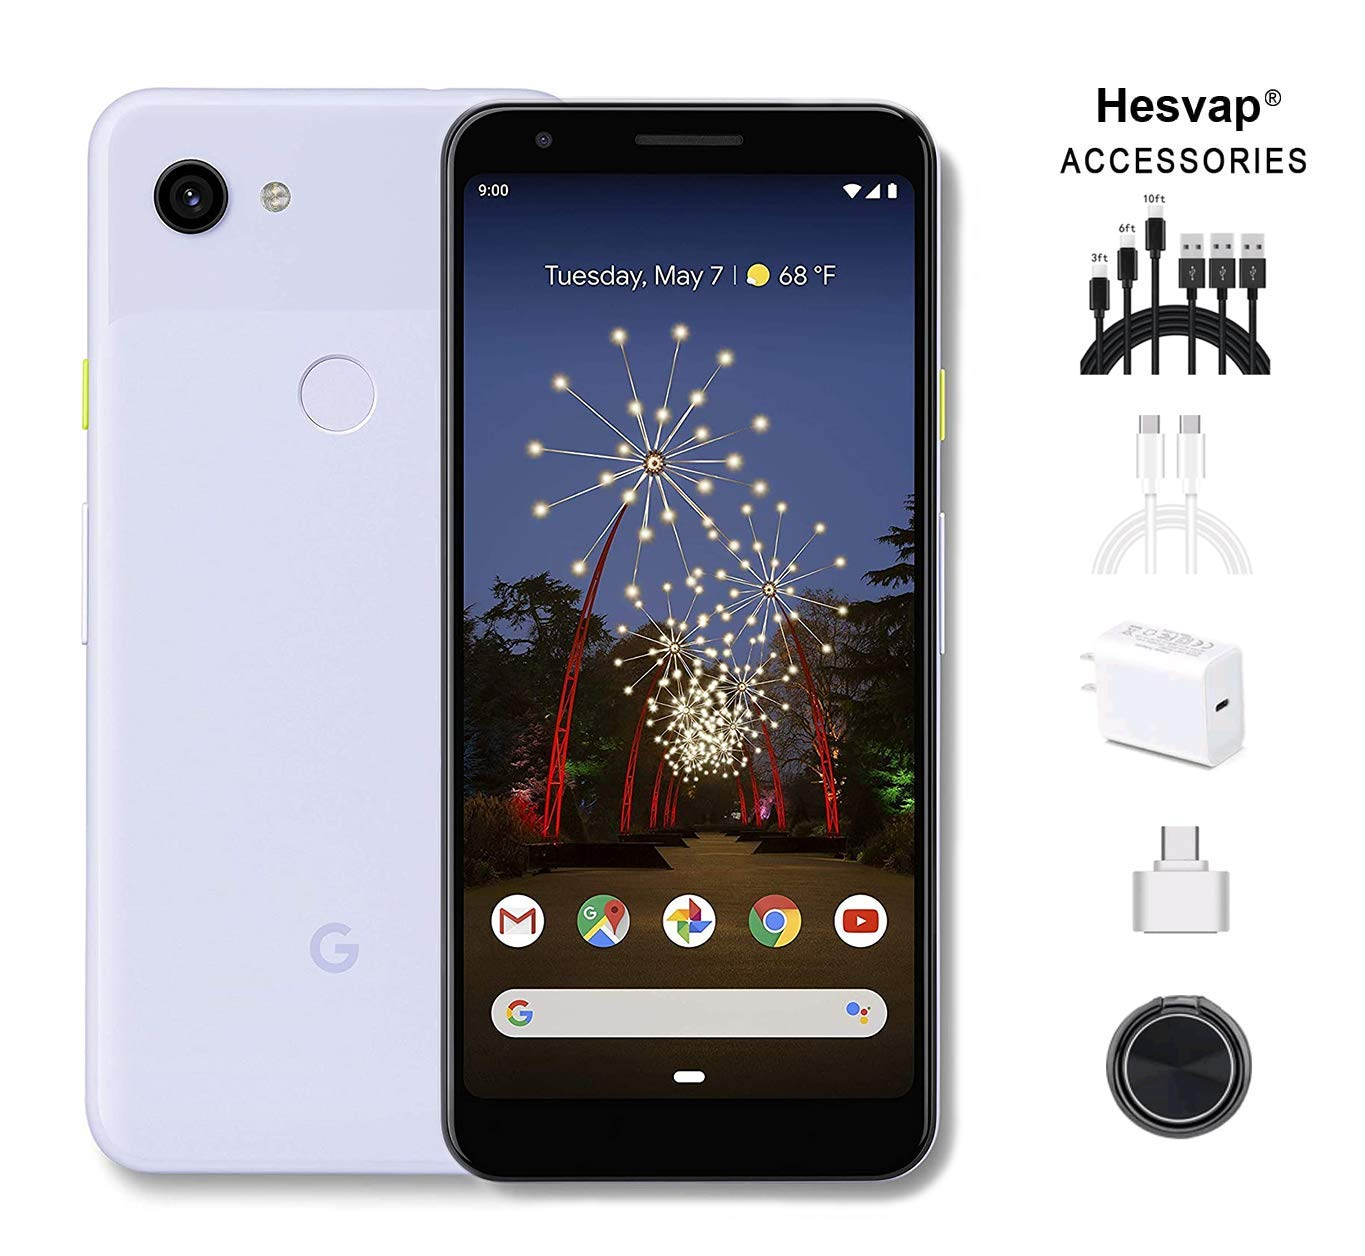 Google - Pixel 3a Unlocked Android G020g with 64GB Memory Cell Phone Unlimited Cloud Storage W/ 69.99 Hesvap 7 in 1 Accessories Bundle (Purple-ish)